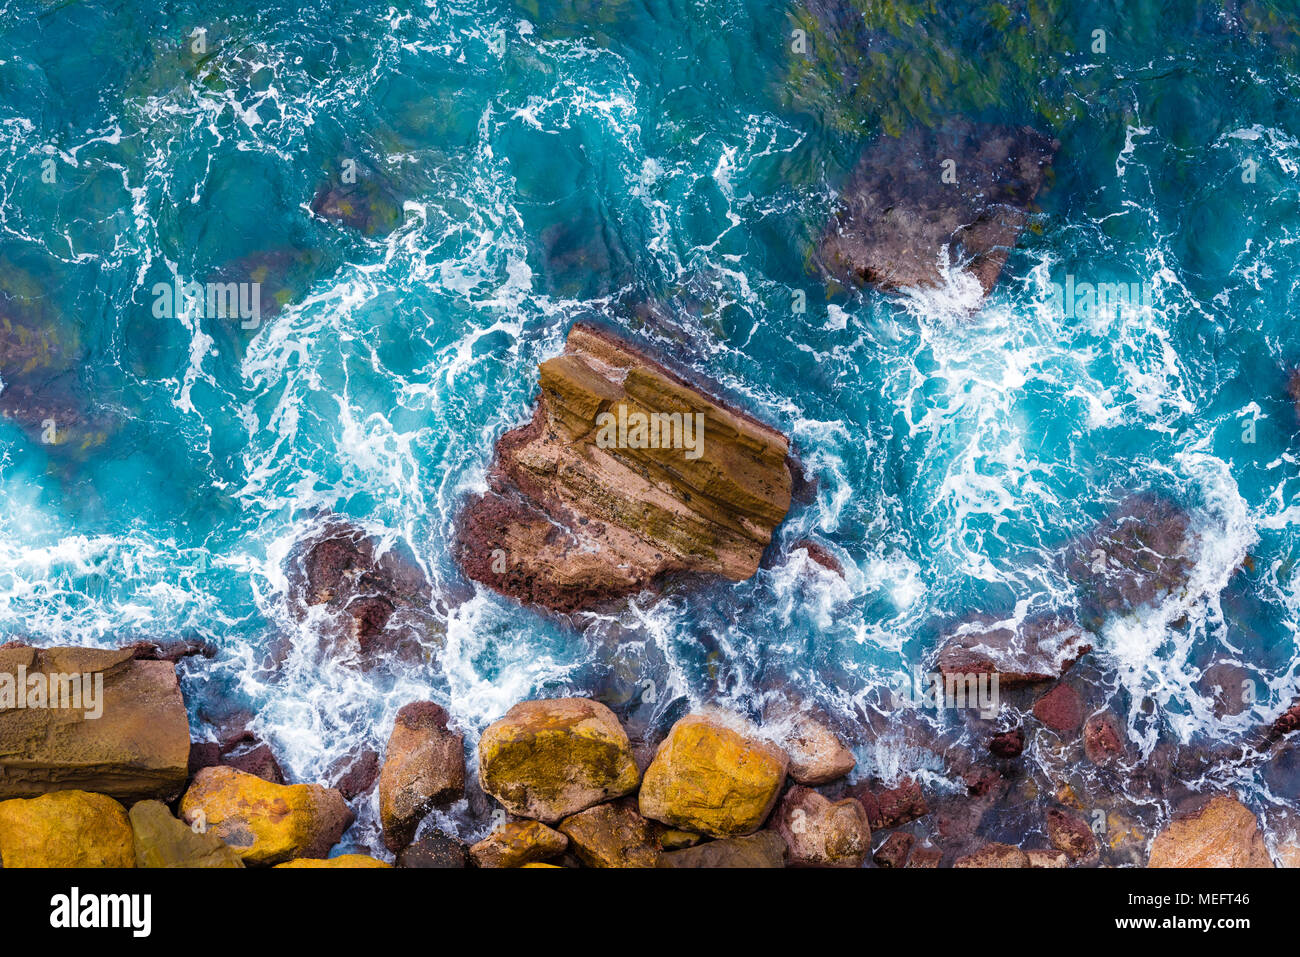 Top aerial view of blue waves crashing on rocky Australian coastline. Summer seascape with birds eye view shot over ocean waves and cliffs. Stock Photo